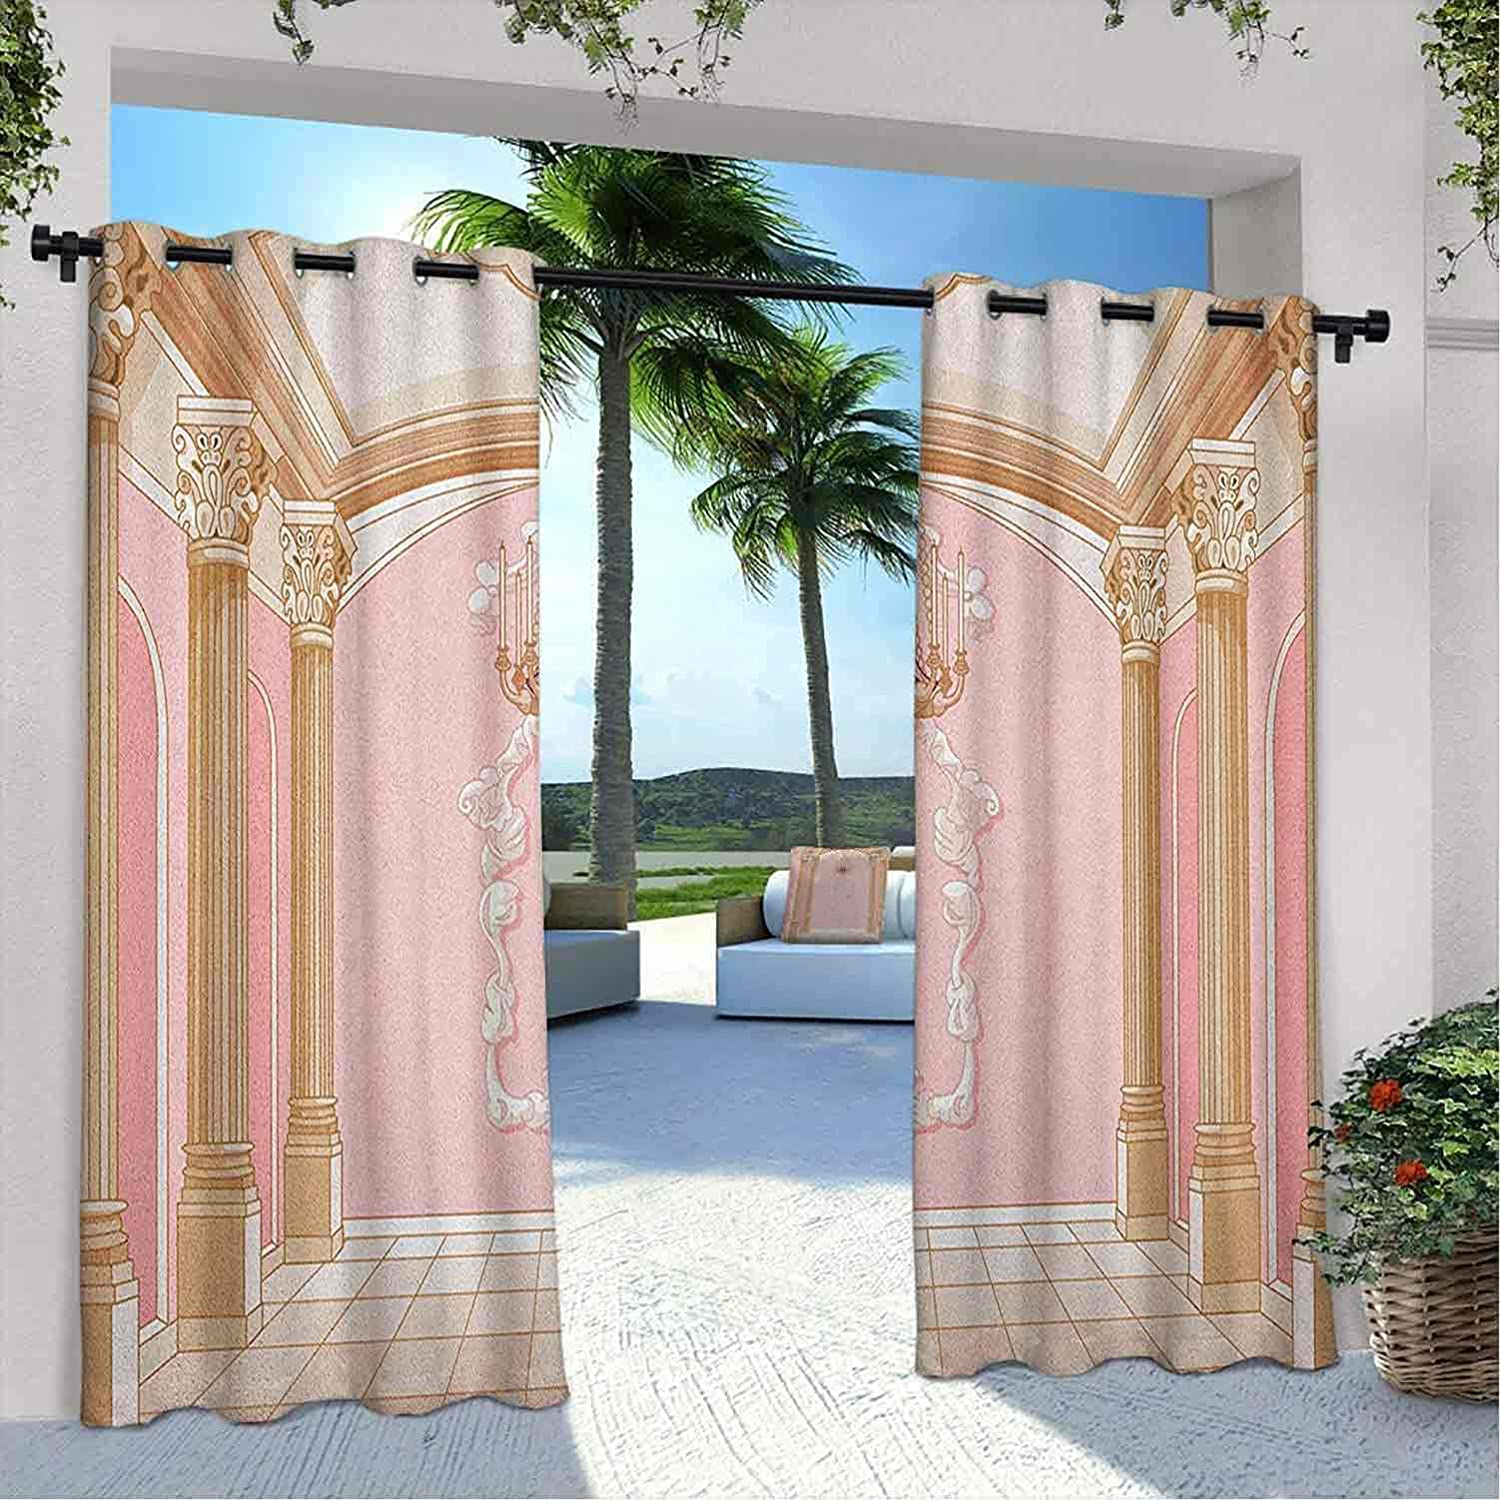 Terrace Outdoor Super beauty product restock quality top Princess Curtain Max 77% OFF Interior Magic of Ballroom The